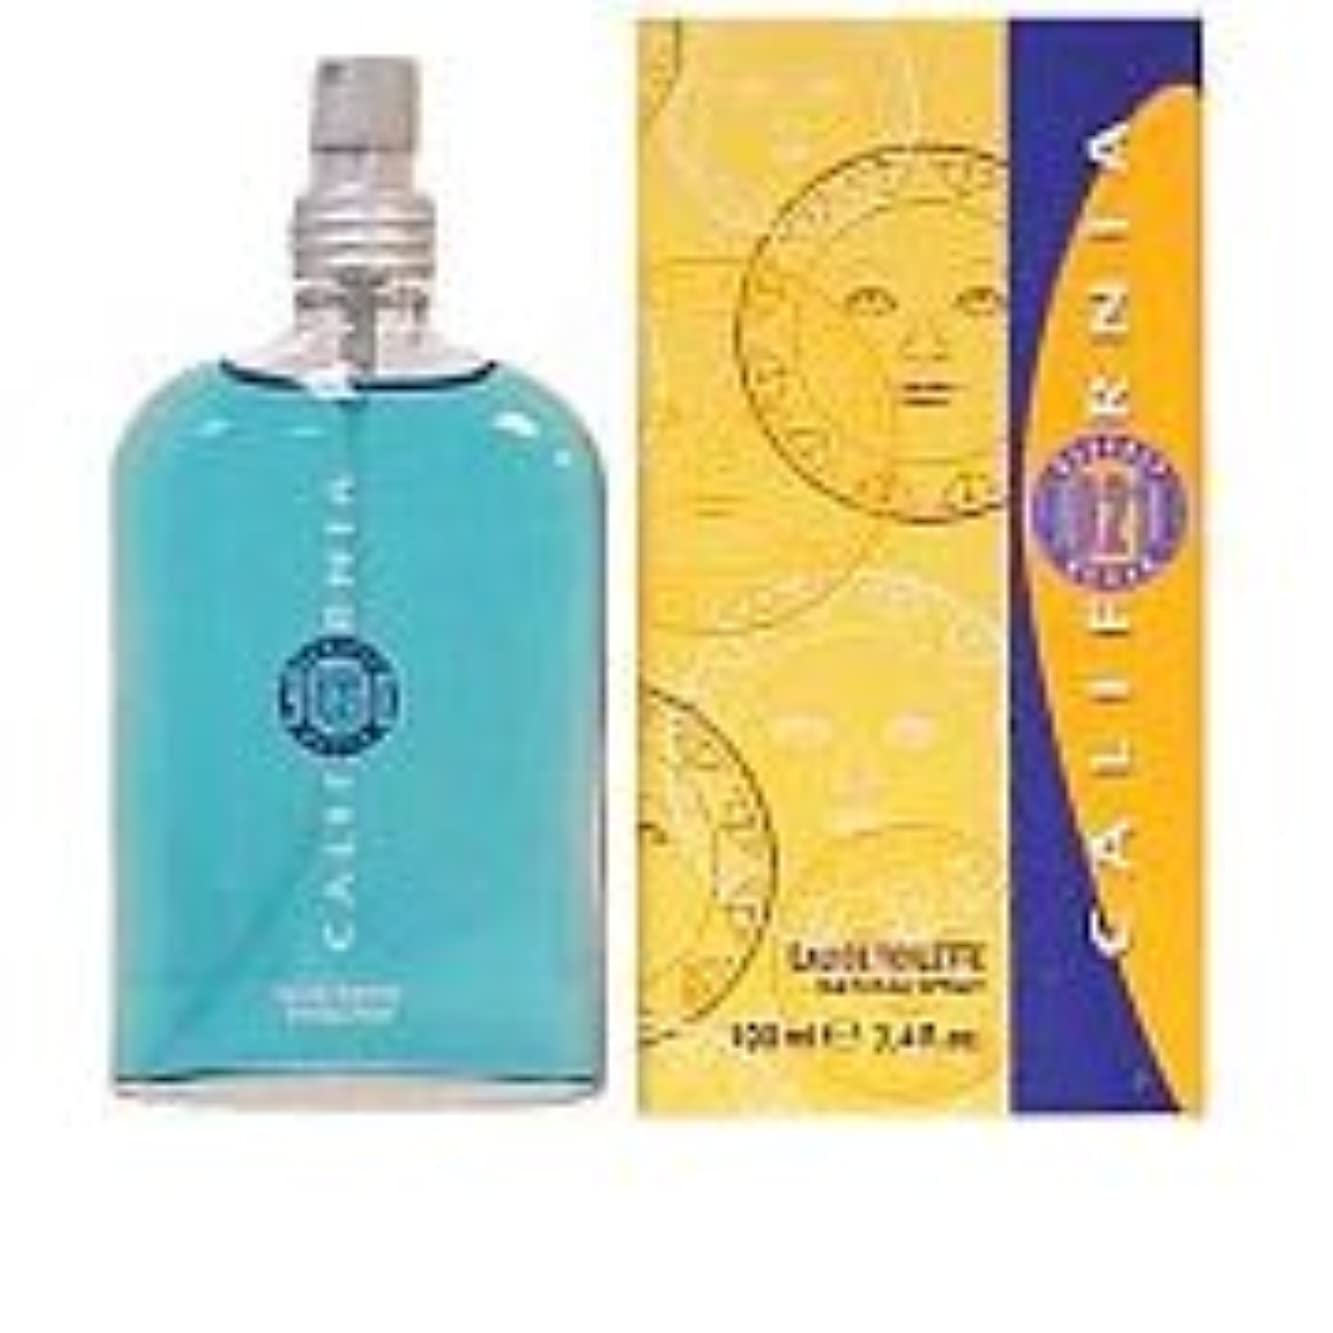 侵入する乱用汚れる90210 California (90210 カリフォルニア) 3.4 oz (100ml) EDT Spray by Beverly Hills 90210 for Men